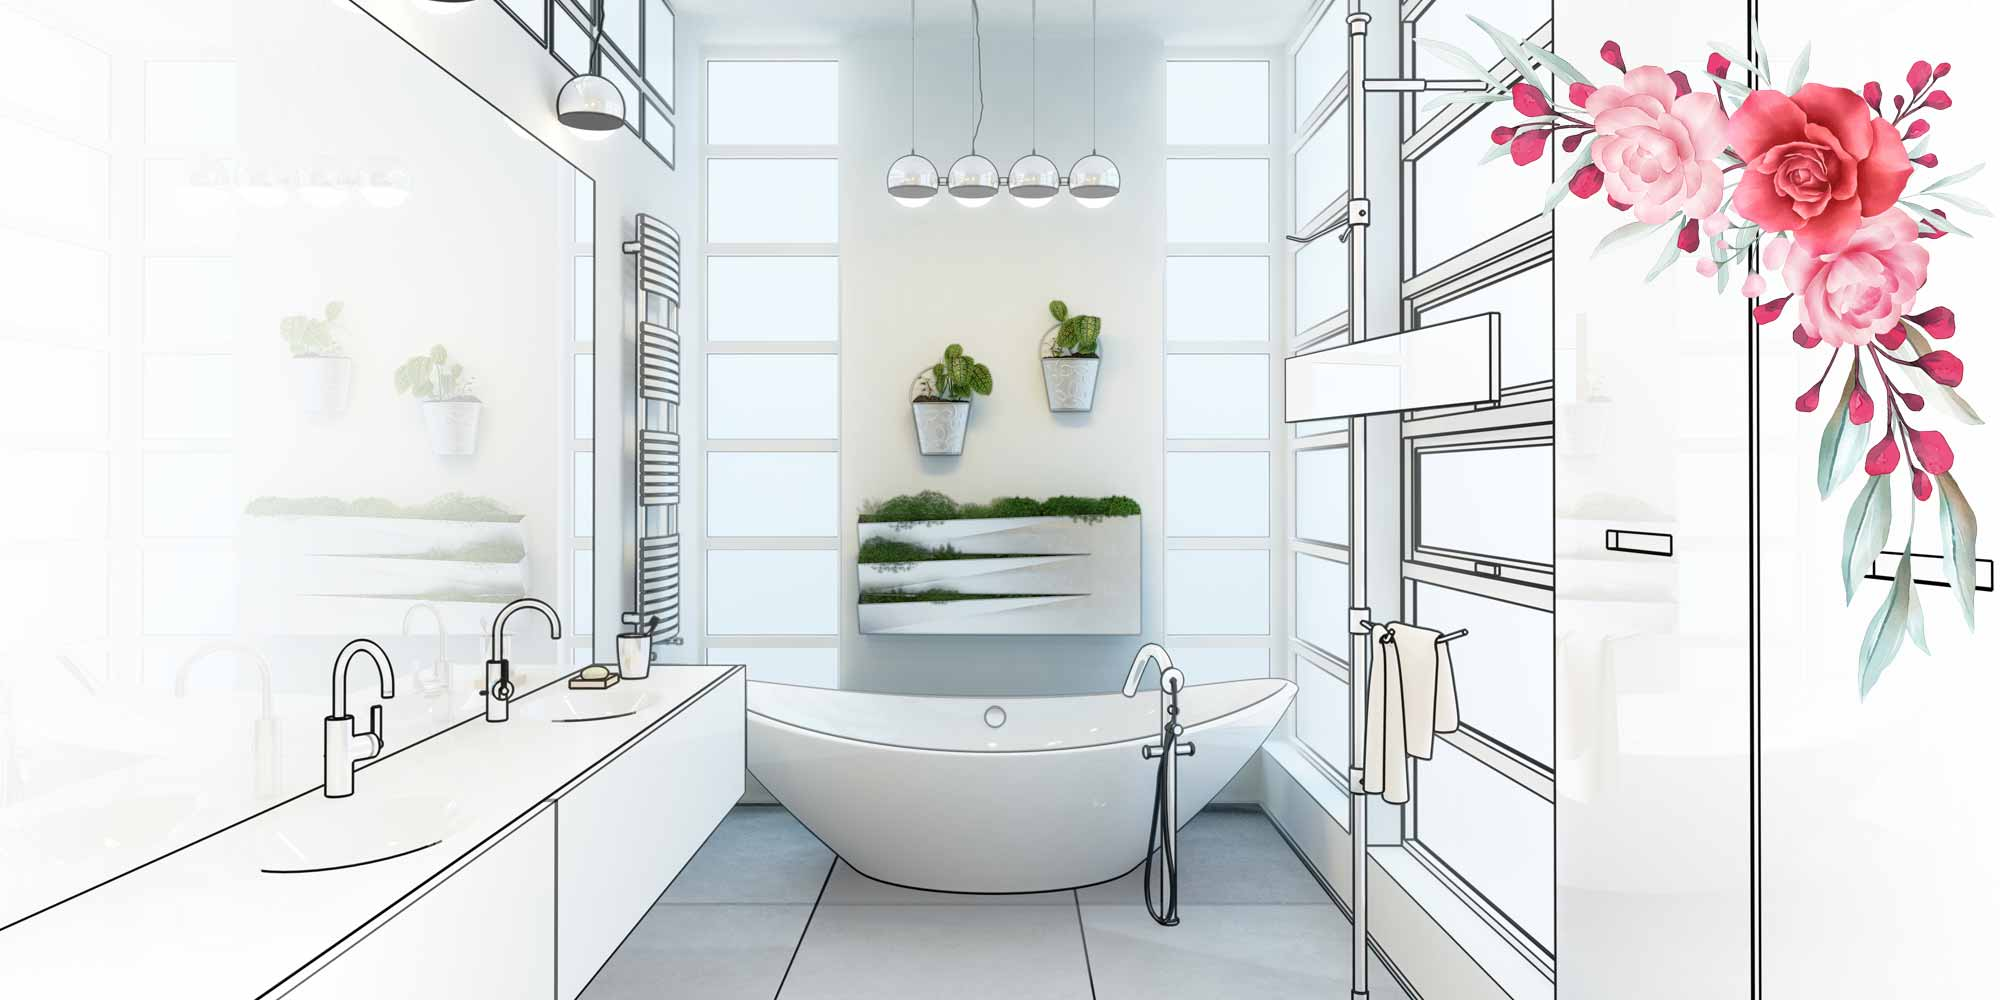 A must read article before investing in a bathroom renovation